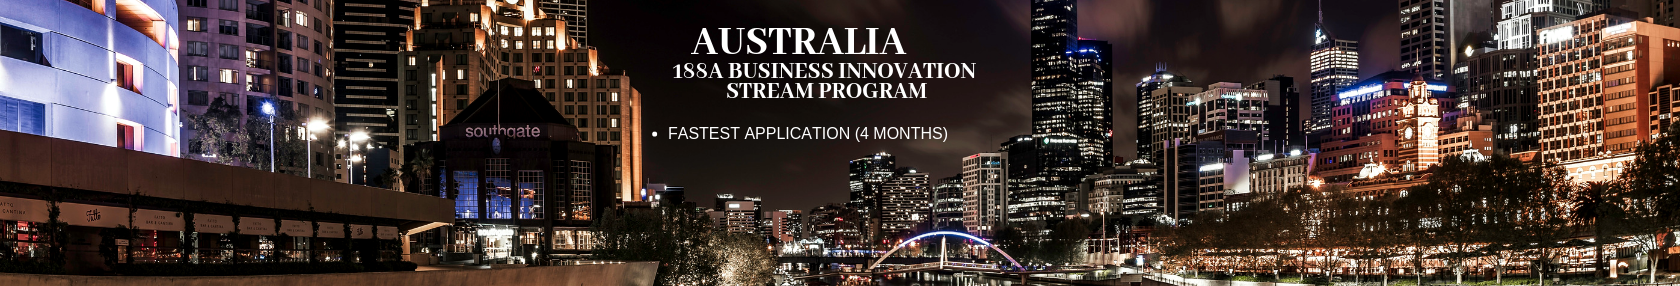 Australia, 188A Business Innovation Stream